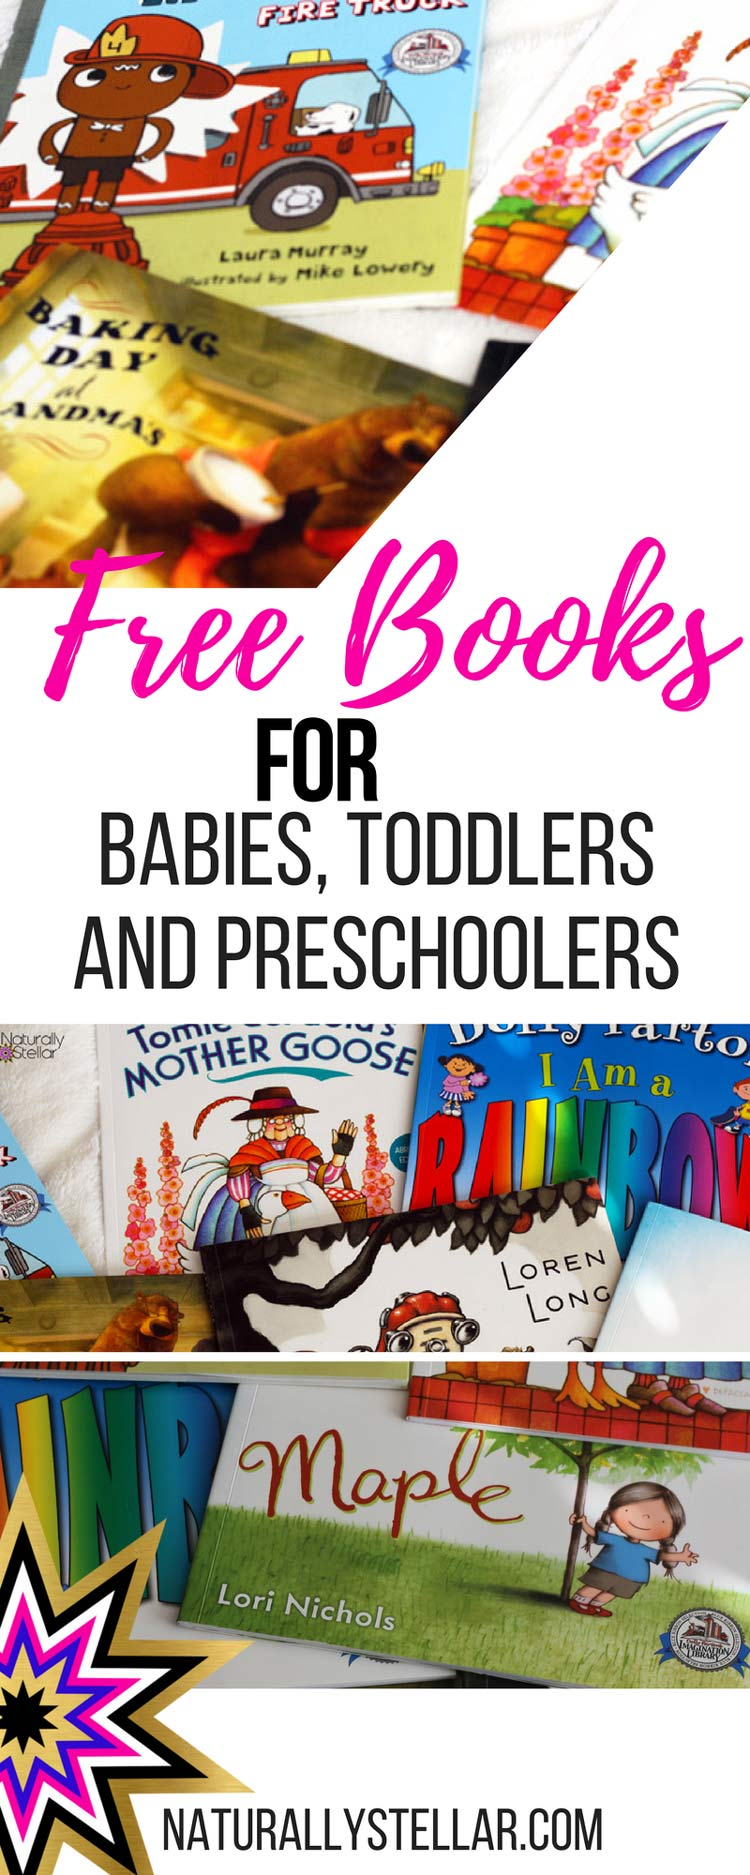 Free Books For Babies, Toddlers and PreSchoolers